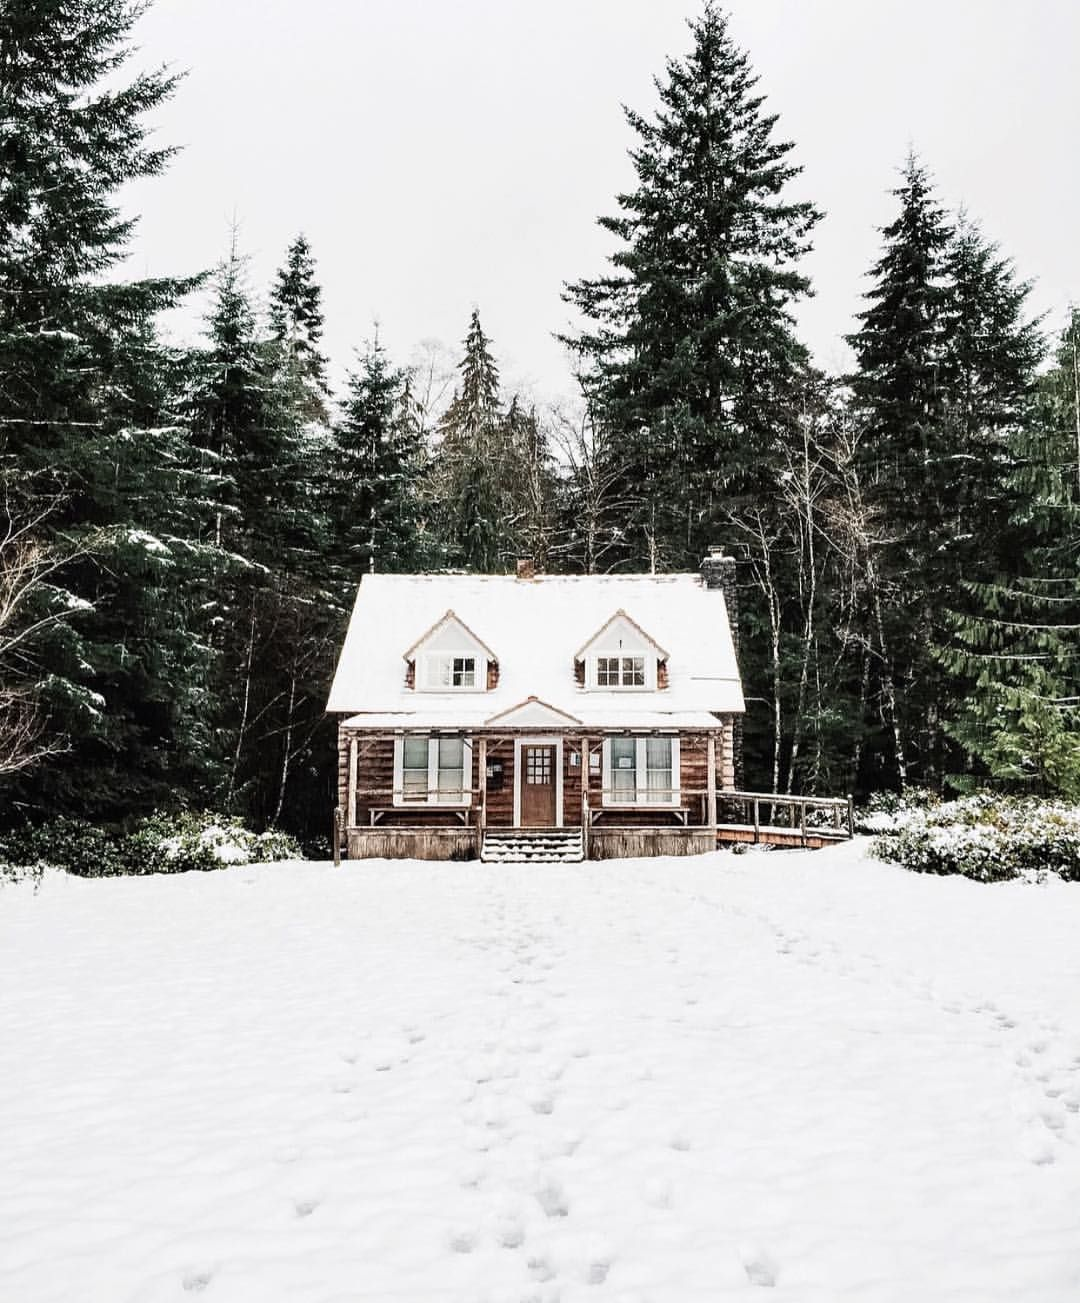 UP KNÖRTH : Photo | C A B I N S | Pinterest | Winter, Woods and ...